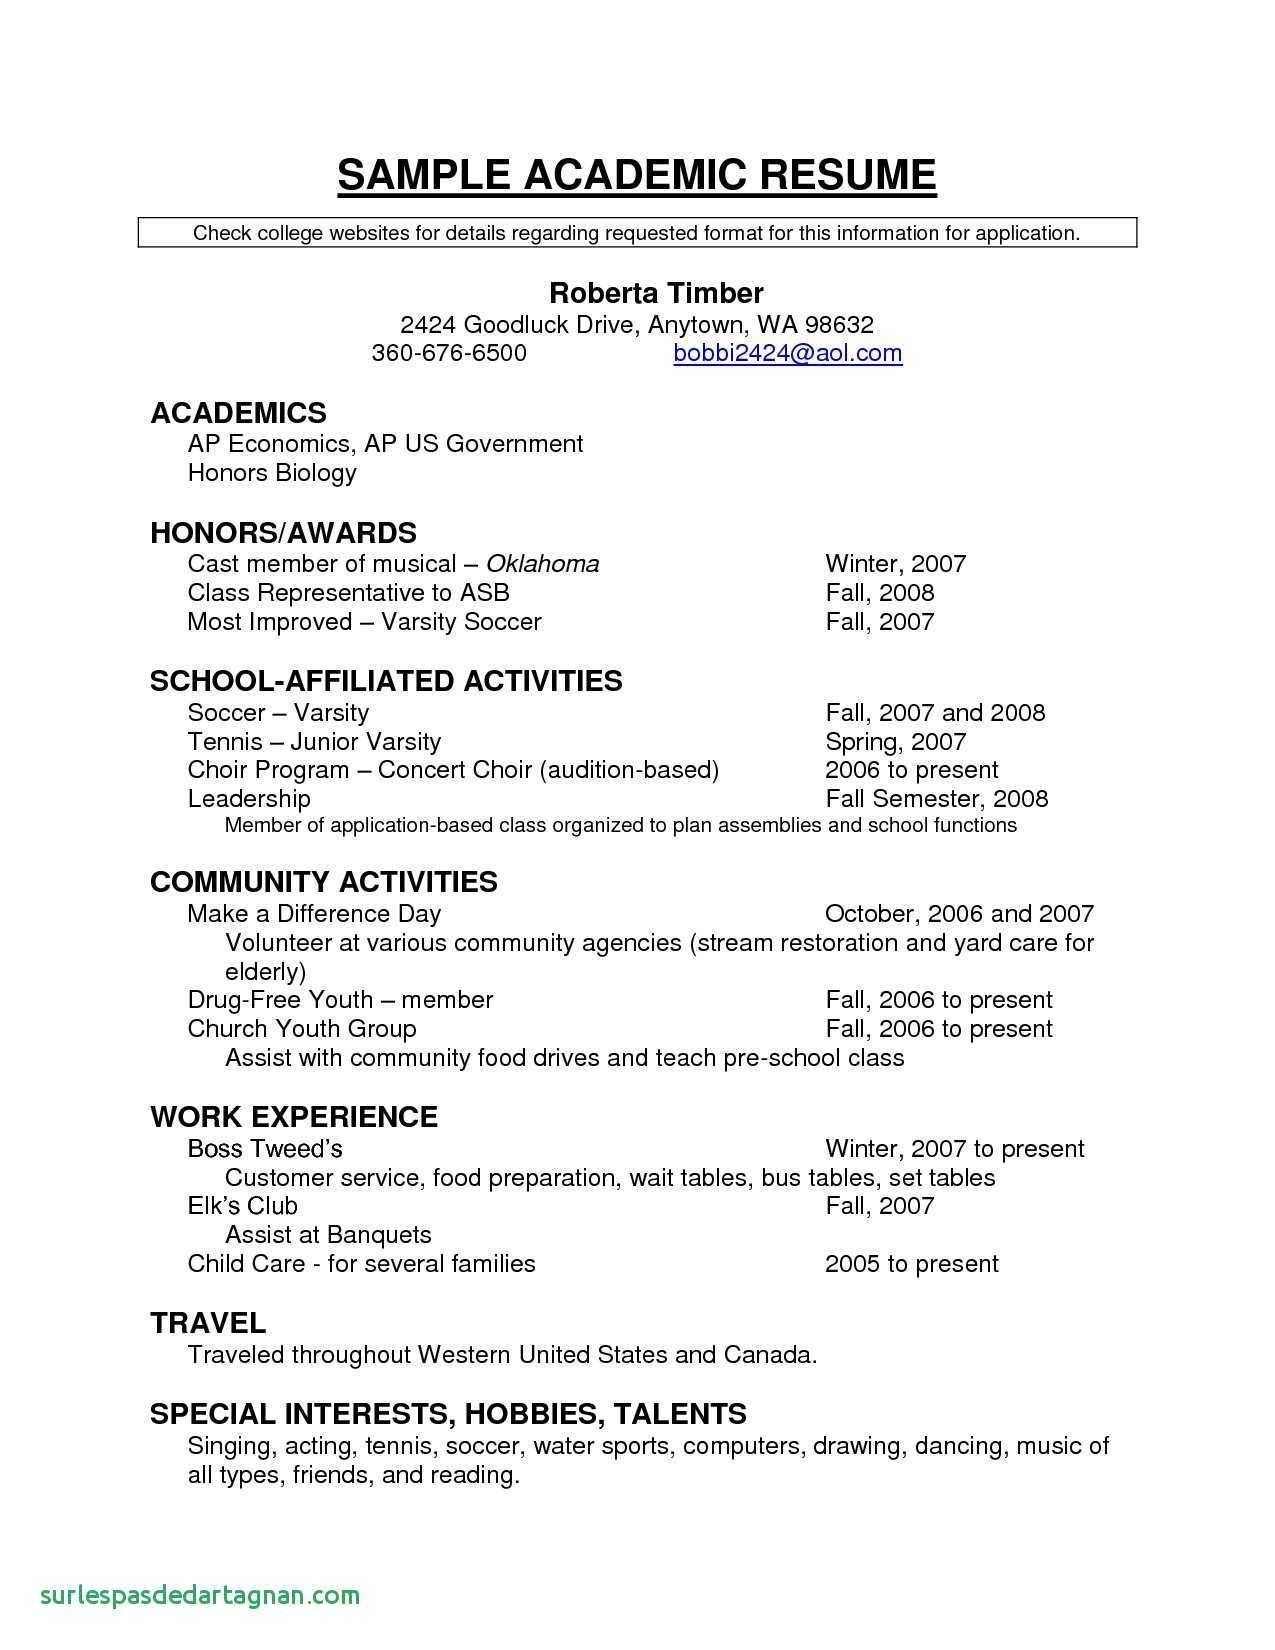 16 Year Old Resume Luxury 11 Resume Template For 16 Year Old Ideas Teacher Resume Template Teacher Resume Resume Template